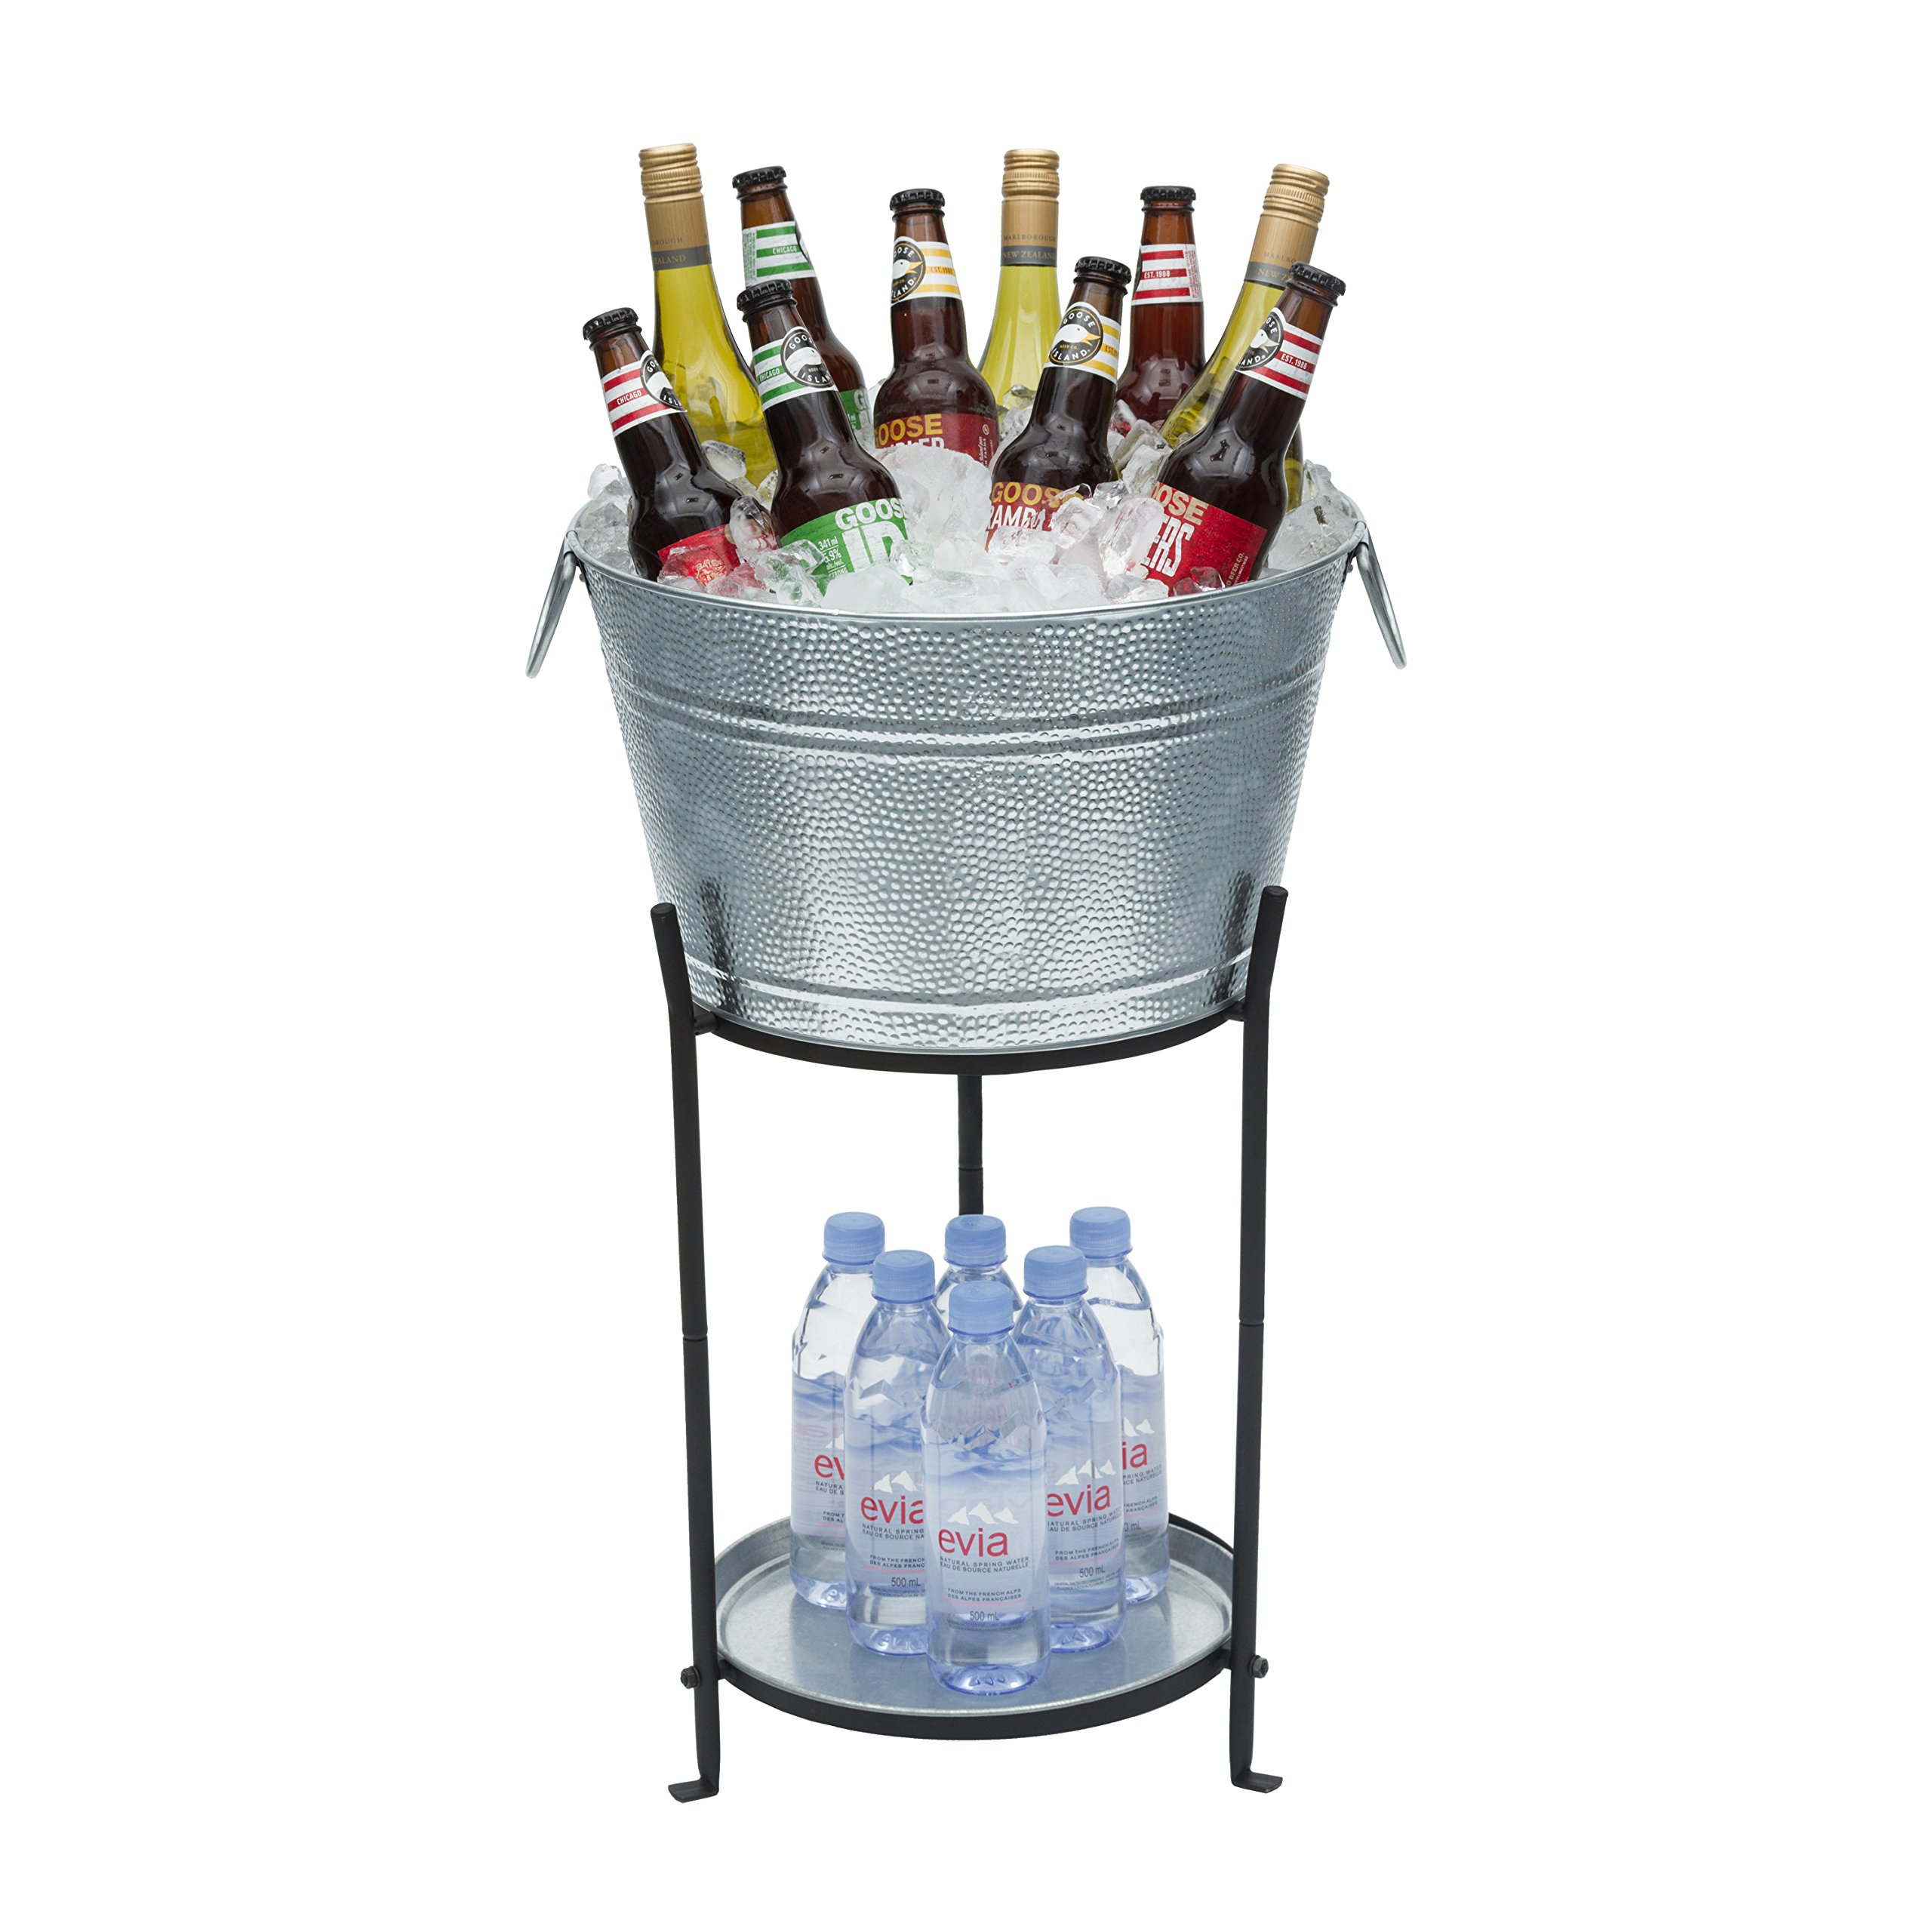 Ice Bucket With Stand and Tray. Galvanized Party Tub Is Perfect for Holding Beer, Wine, Champagne or Any Beverage. Large Size. Superior Construction, No Leaks or Wobbles. by My Amazing Ice Bucket